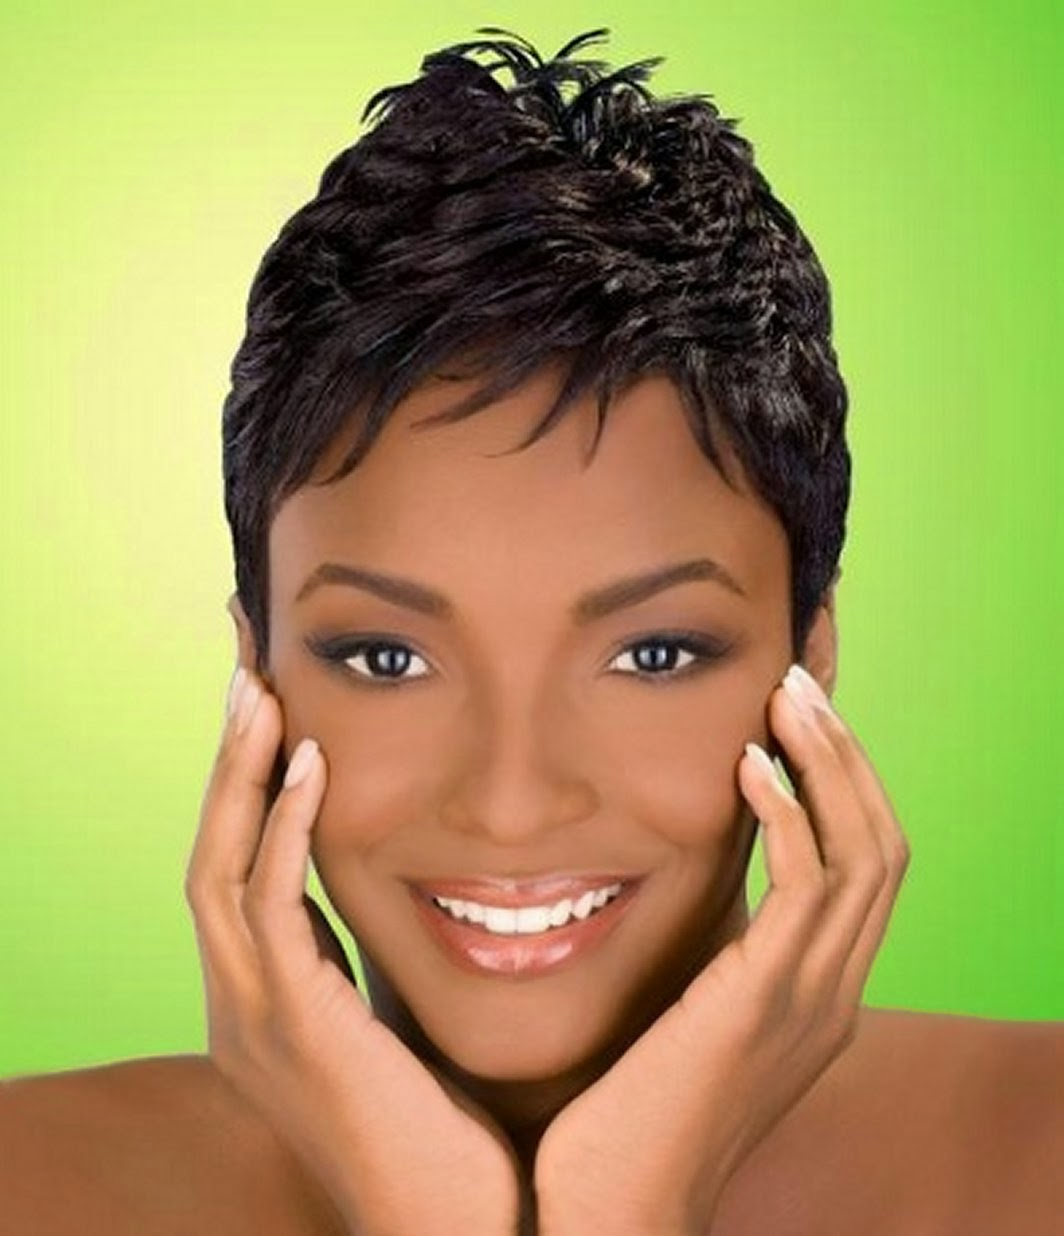 Phenomenal Good Short Hairstyles For African American Women Short Hairstyles For Black Women Fulllsitofus